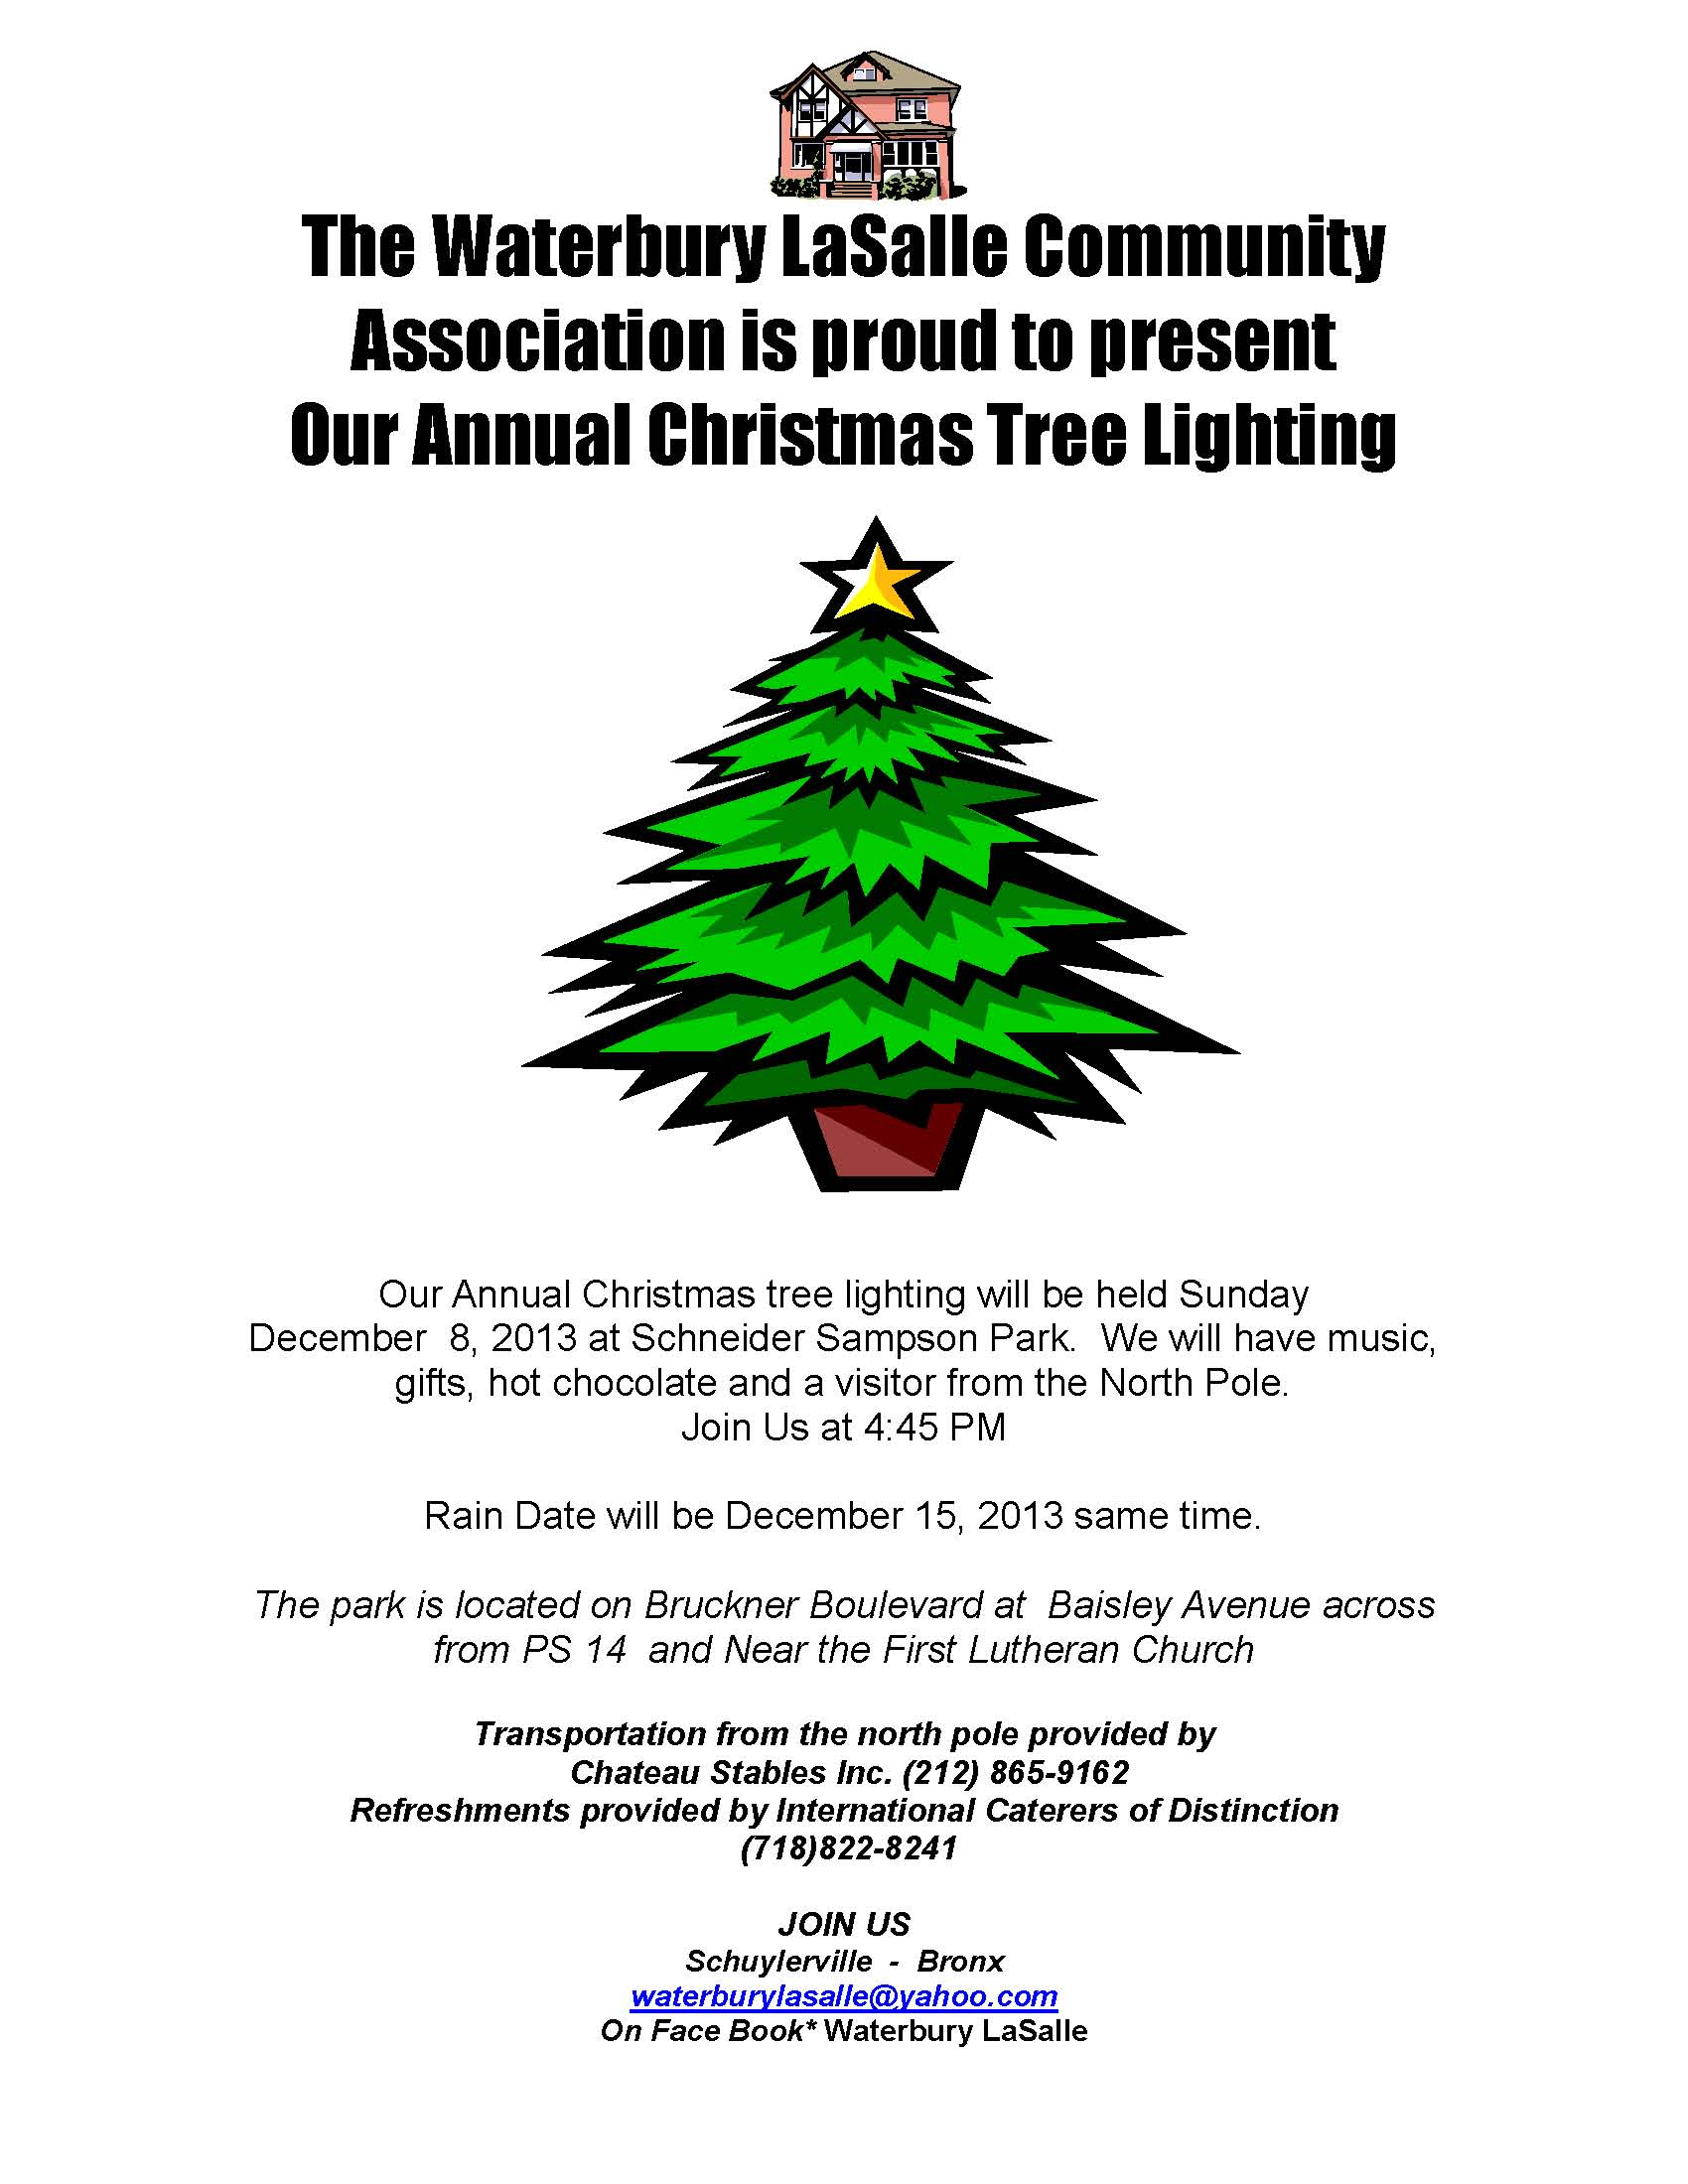 Waterbury LaSalle Community Association Annual Tree Lighting